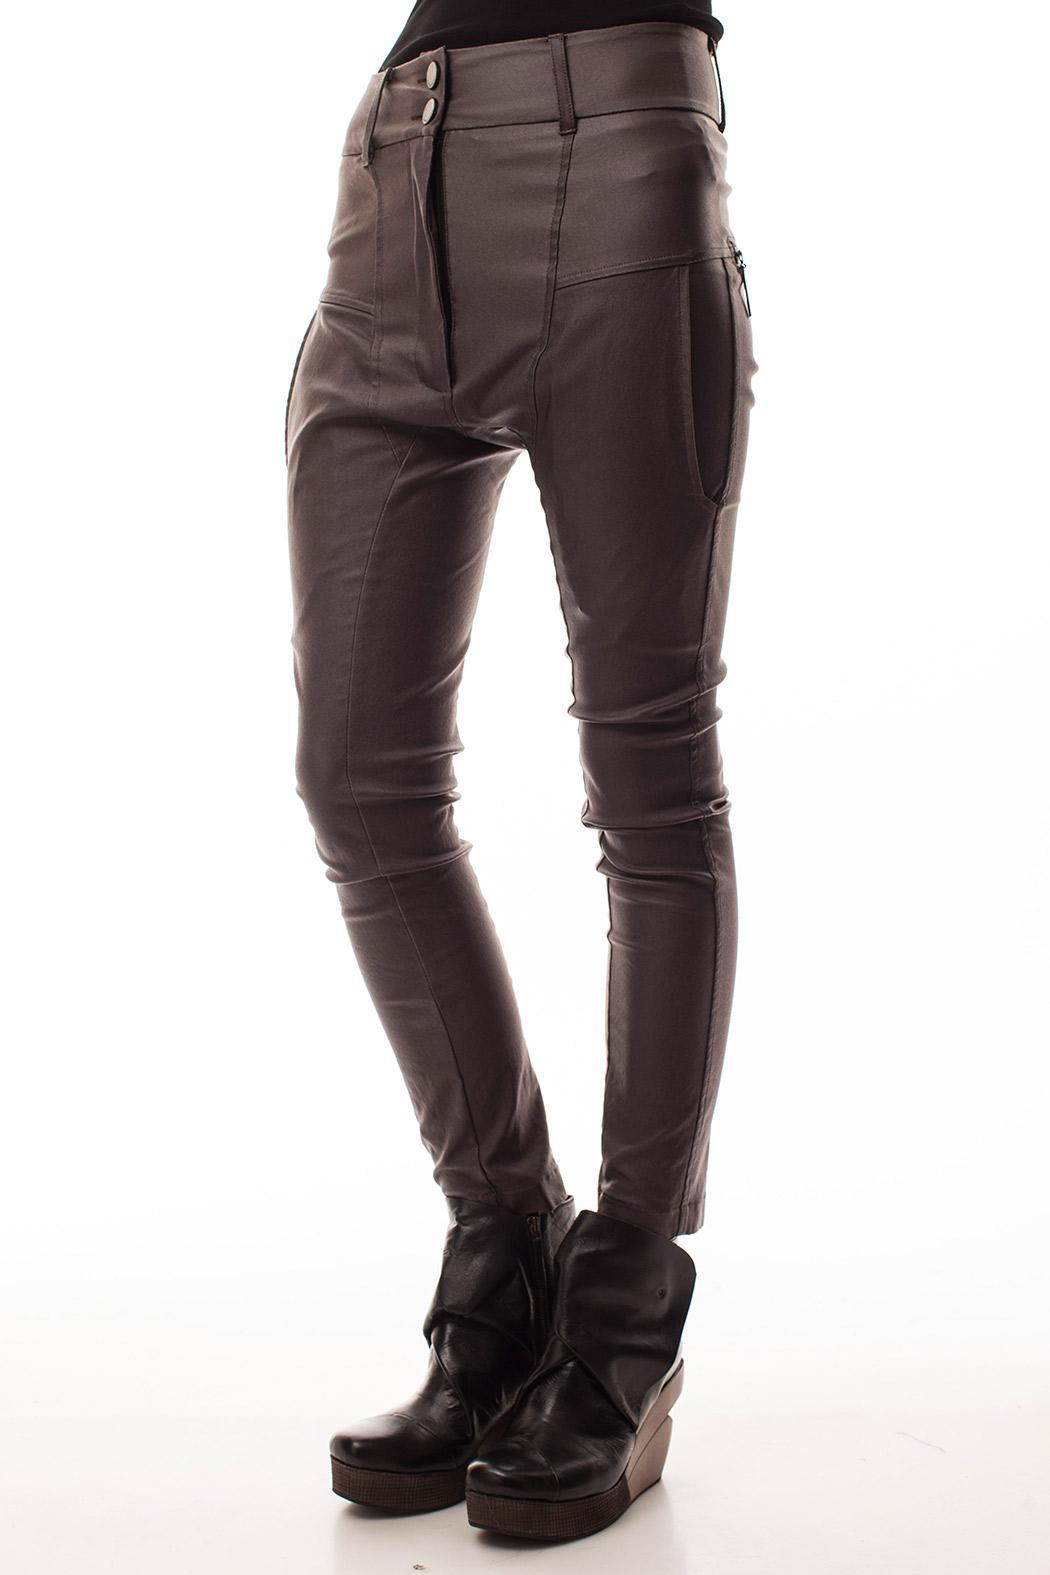 coragroppo Trevi Pants - Front Cropped Image